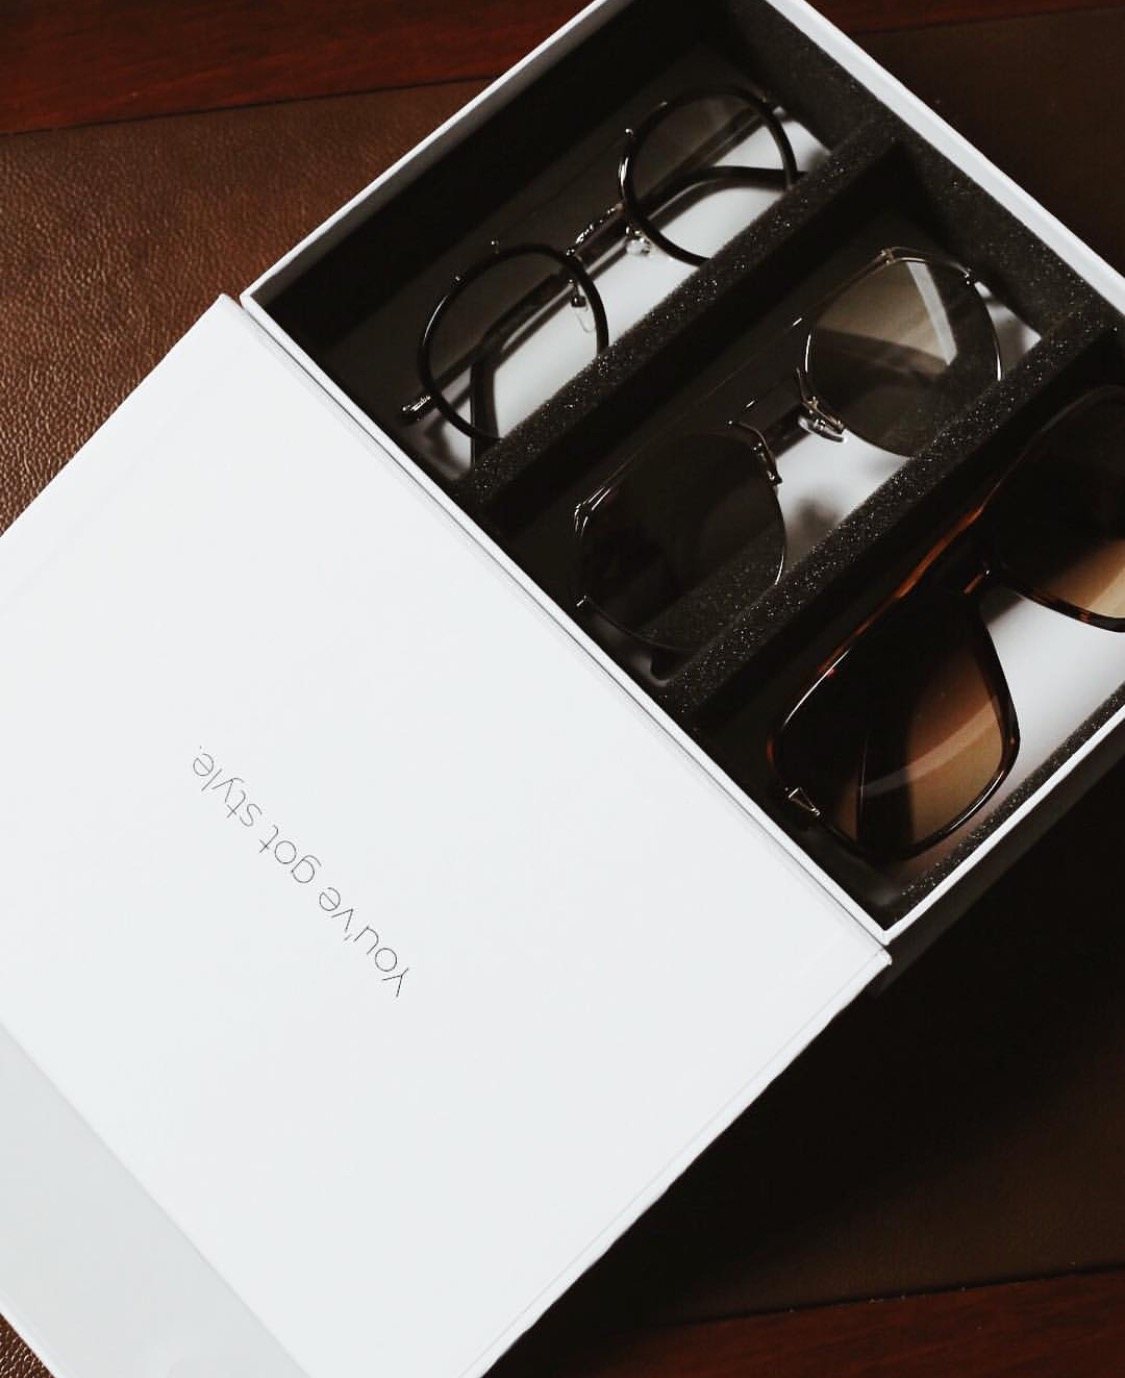 If you want a season worth of sunnies for a reasonable price, you can check  WearMePro  and get yourself a  SHADESBOX , like the one I have ;)